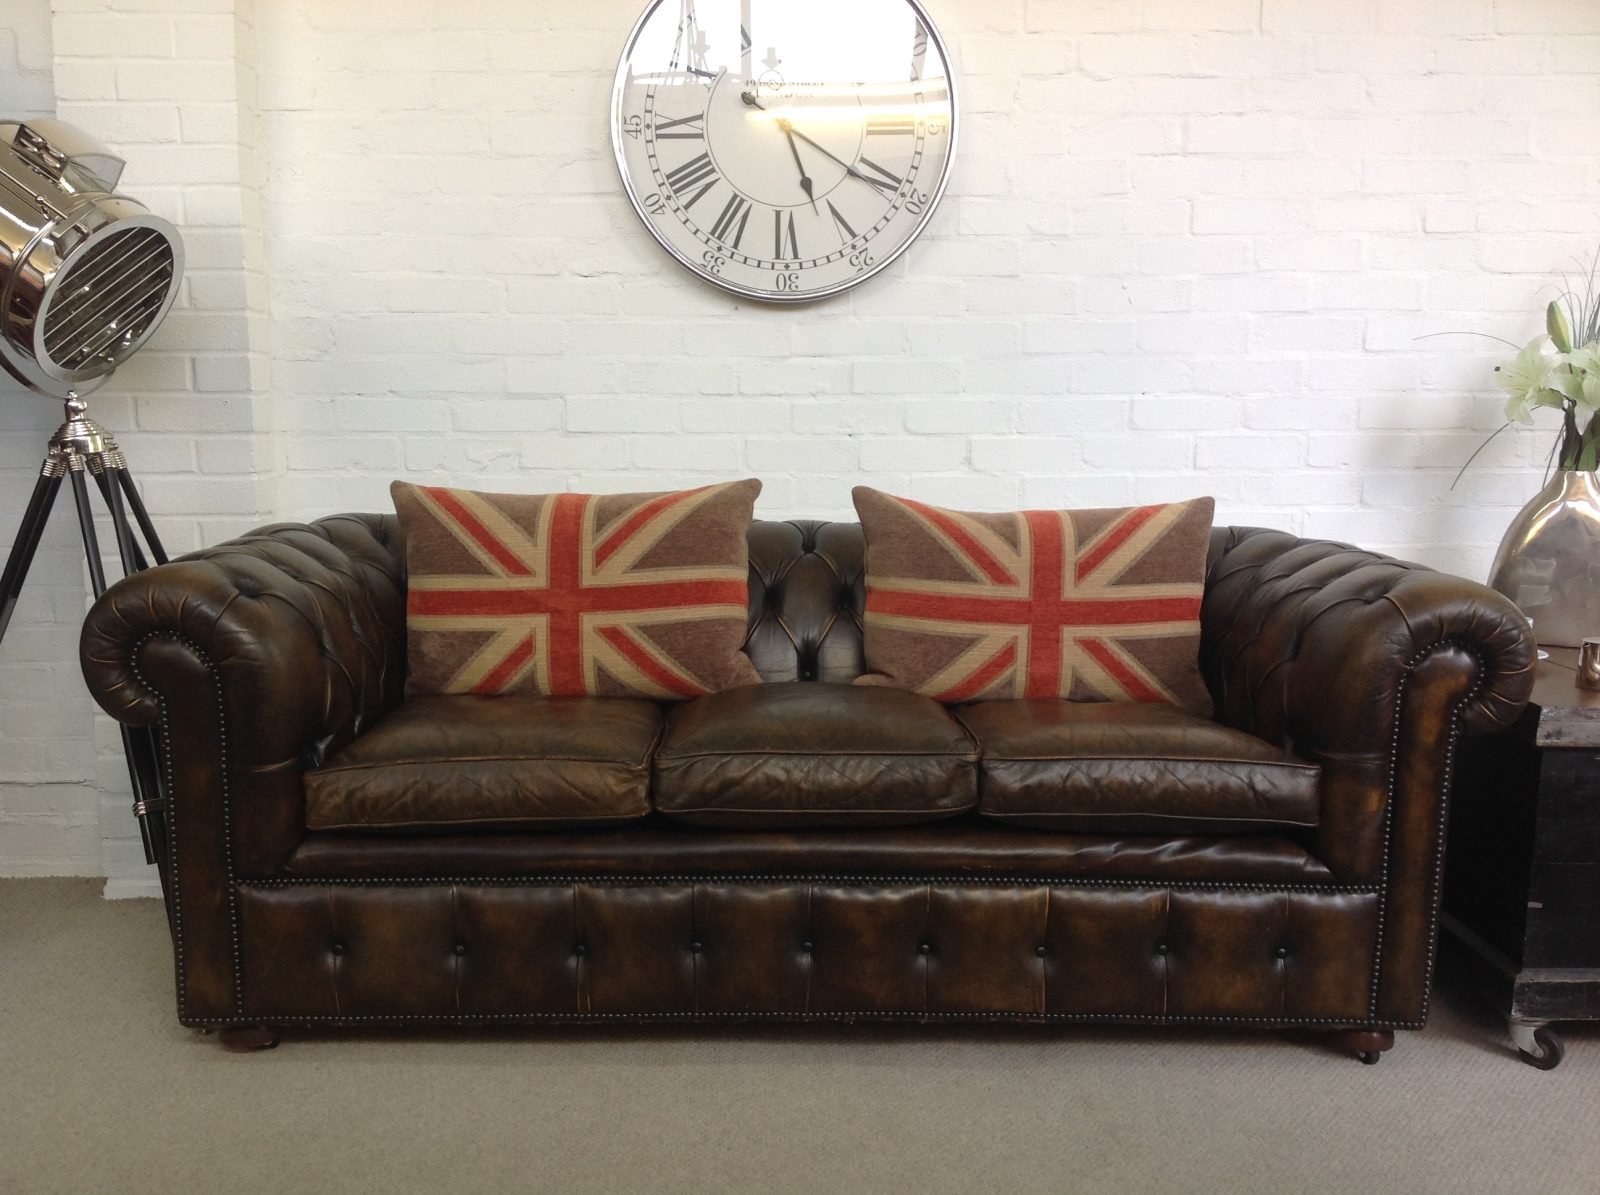 Outstanding Vintage Chesterfield Sofa.